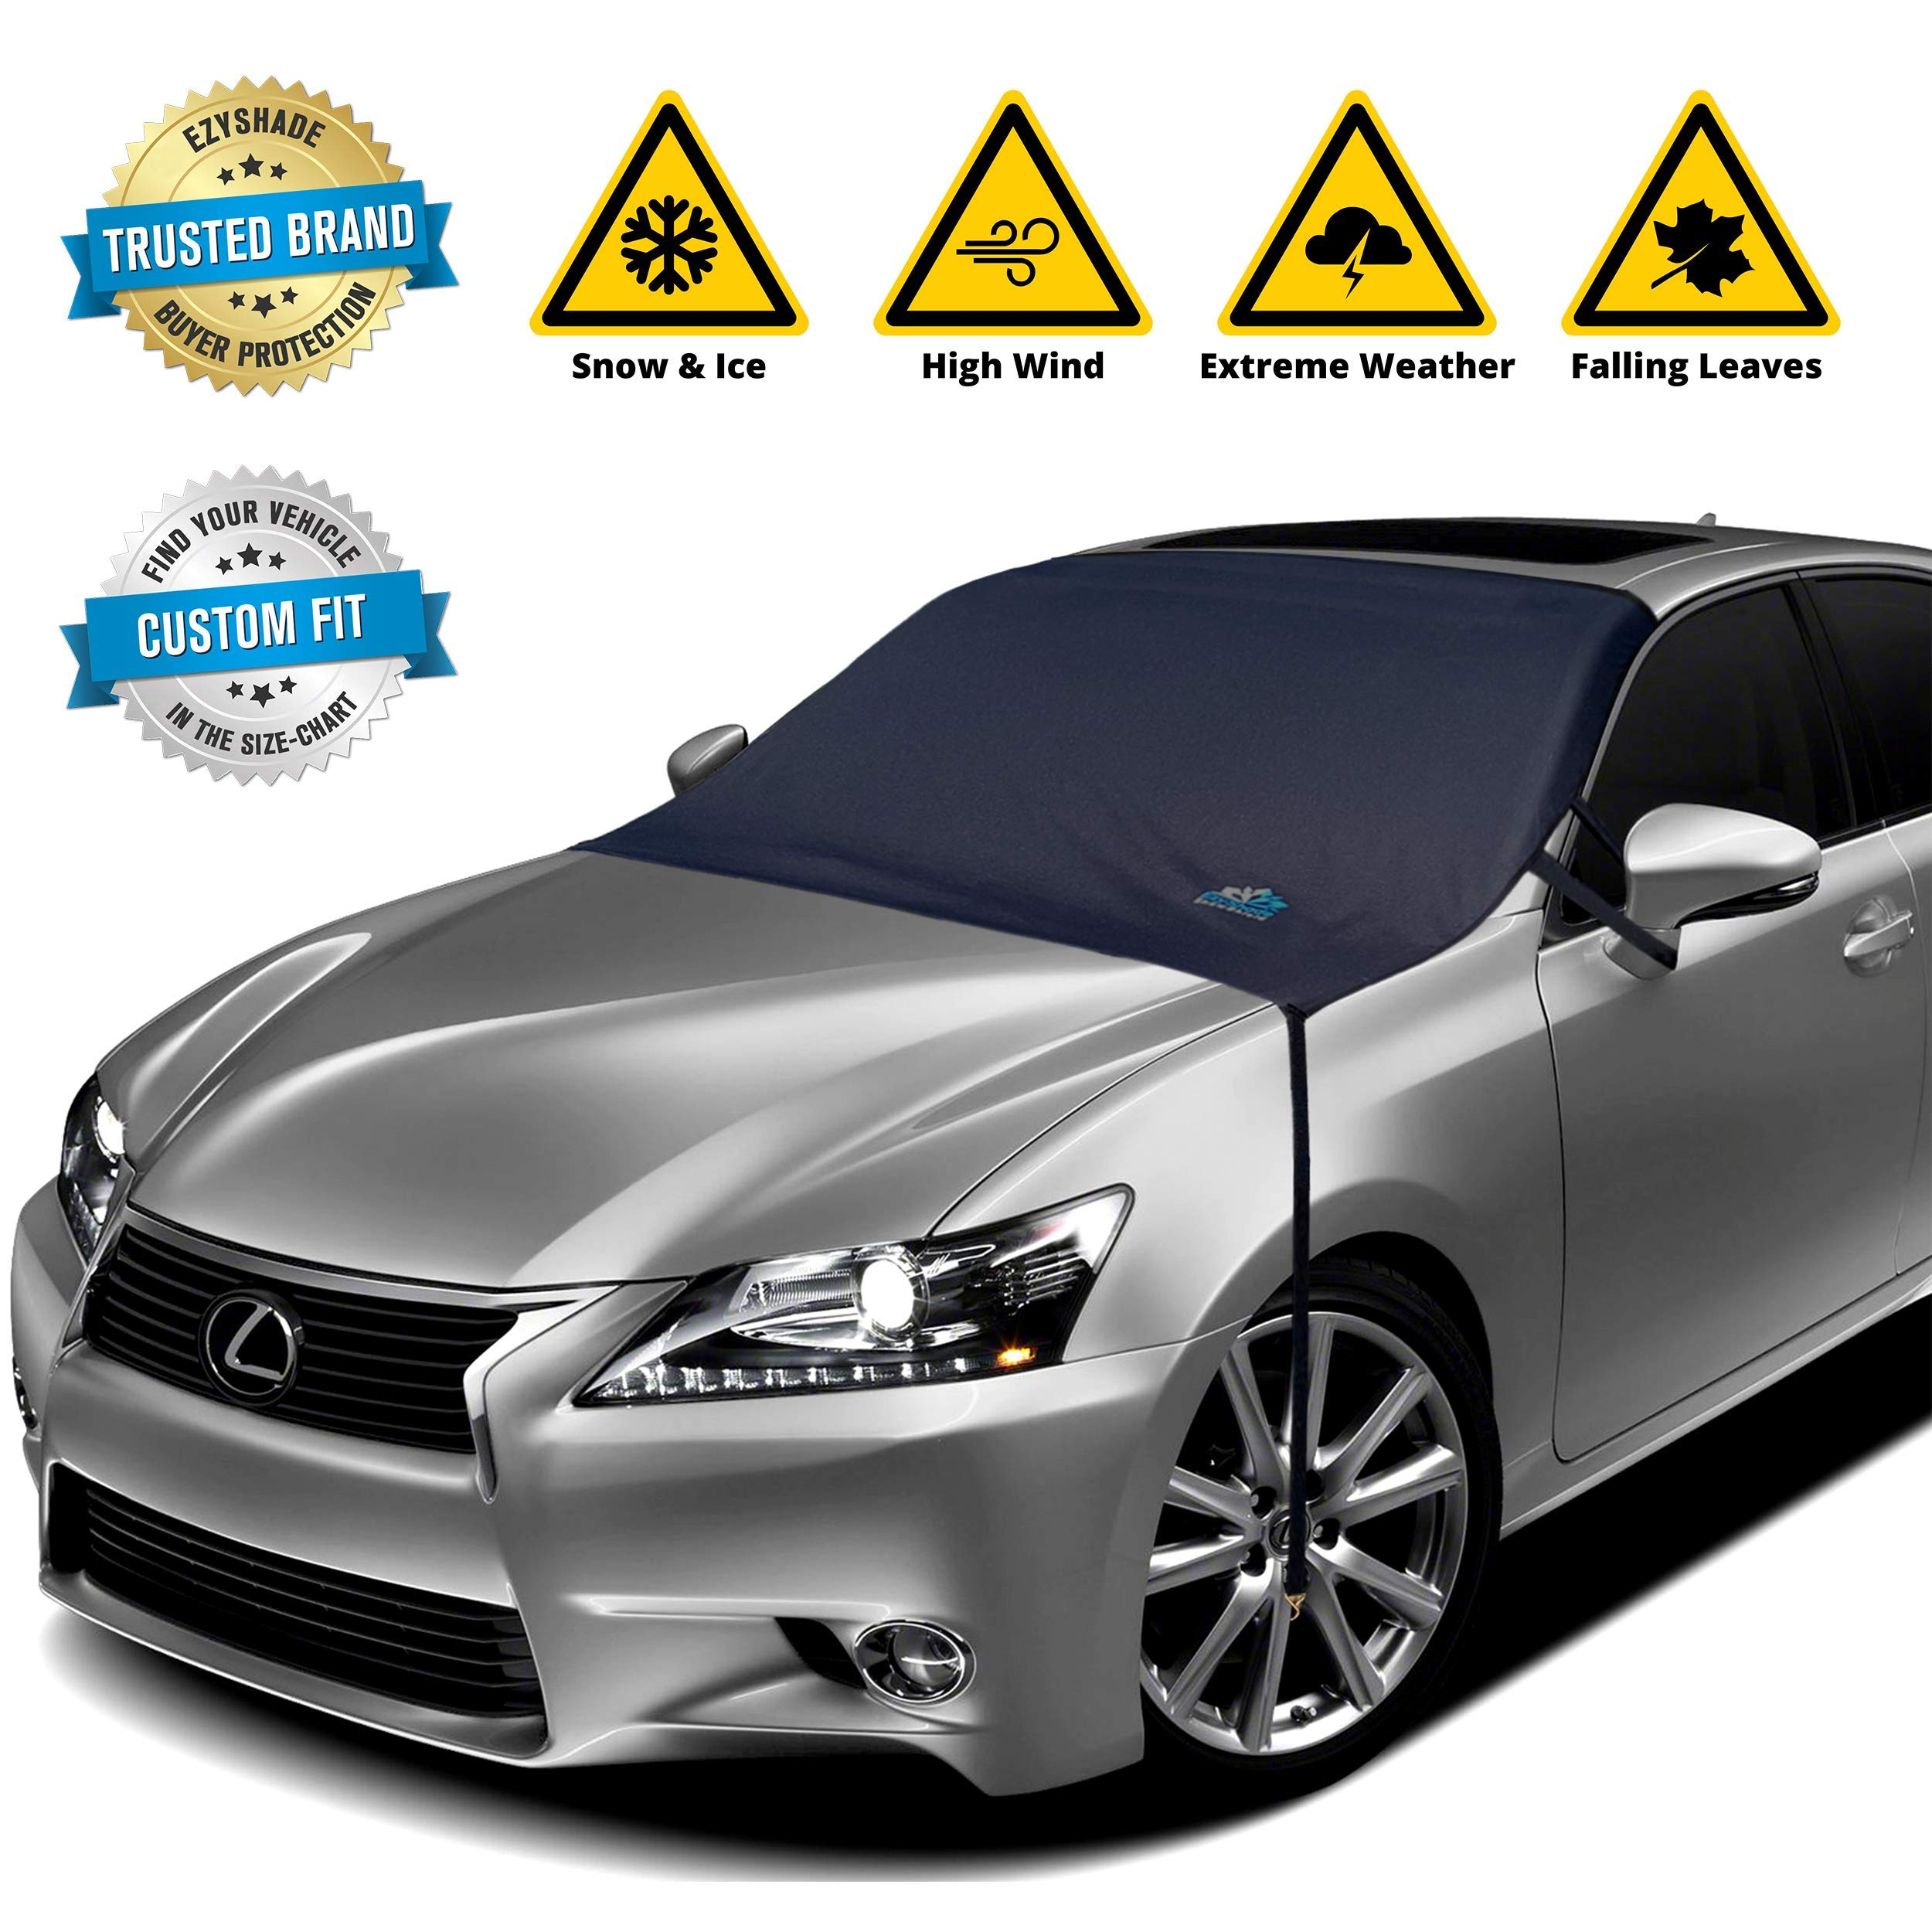 EzyShade Windshield Snow Cover + Bonus Item. See Size-Chart with Your Vehicle for Custom-Like Fit. Highest Durability Waterproof Fabric. No Scratchy Magnets. Keeps Snow and Ice Off. Standard (M) Size